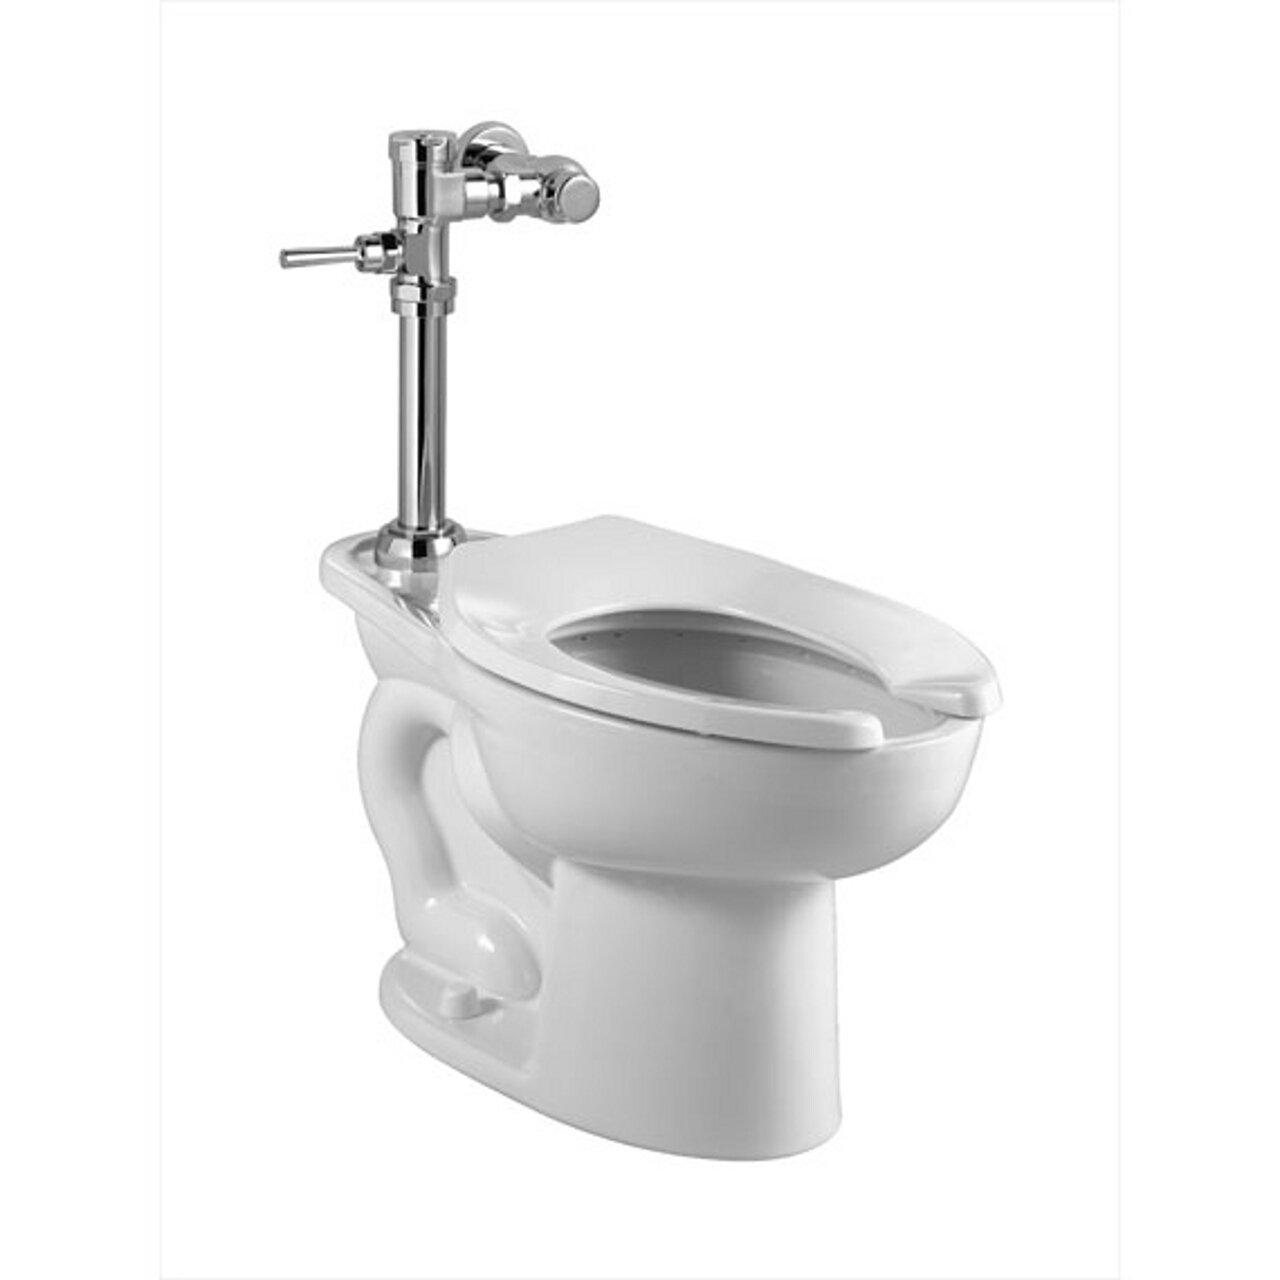 American Standard 2855.128.020 Madera ADA 1.28 GPF EverClean Toilet with Manual Flush Valve, White